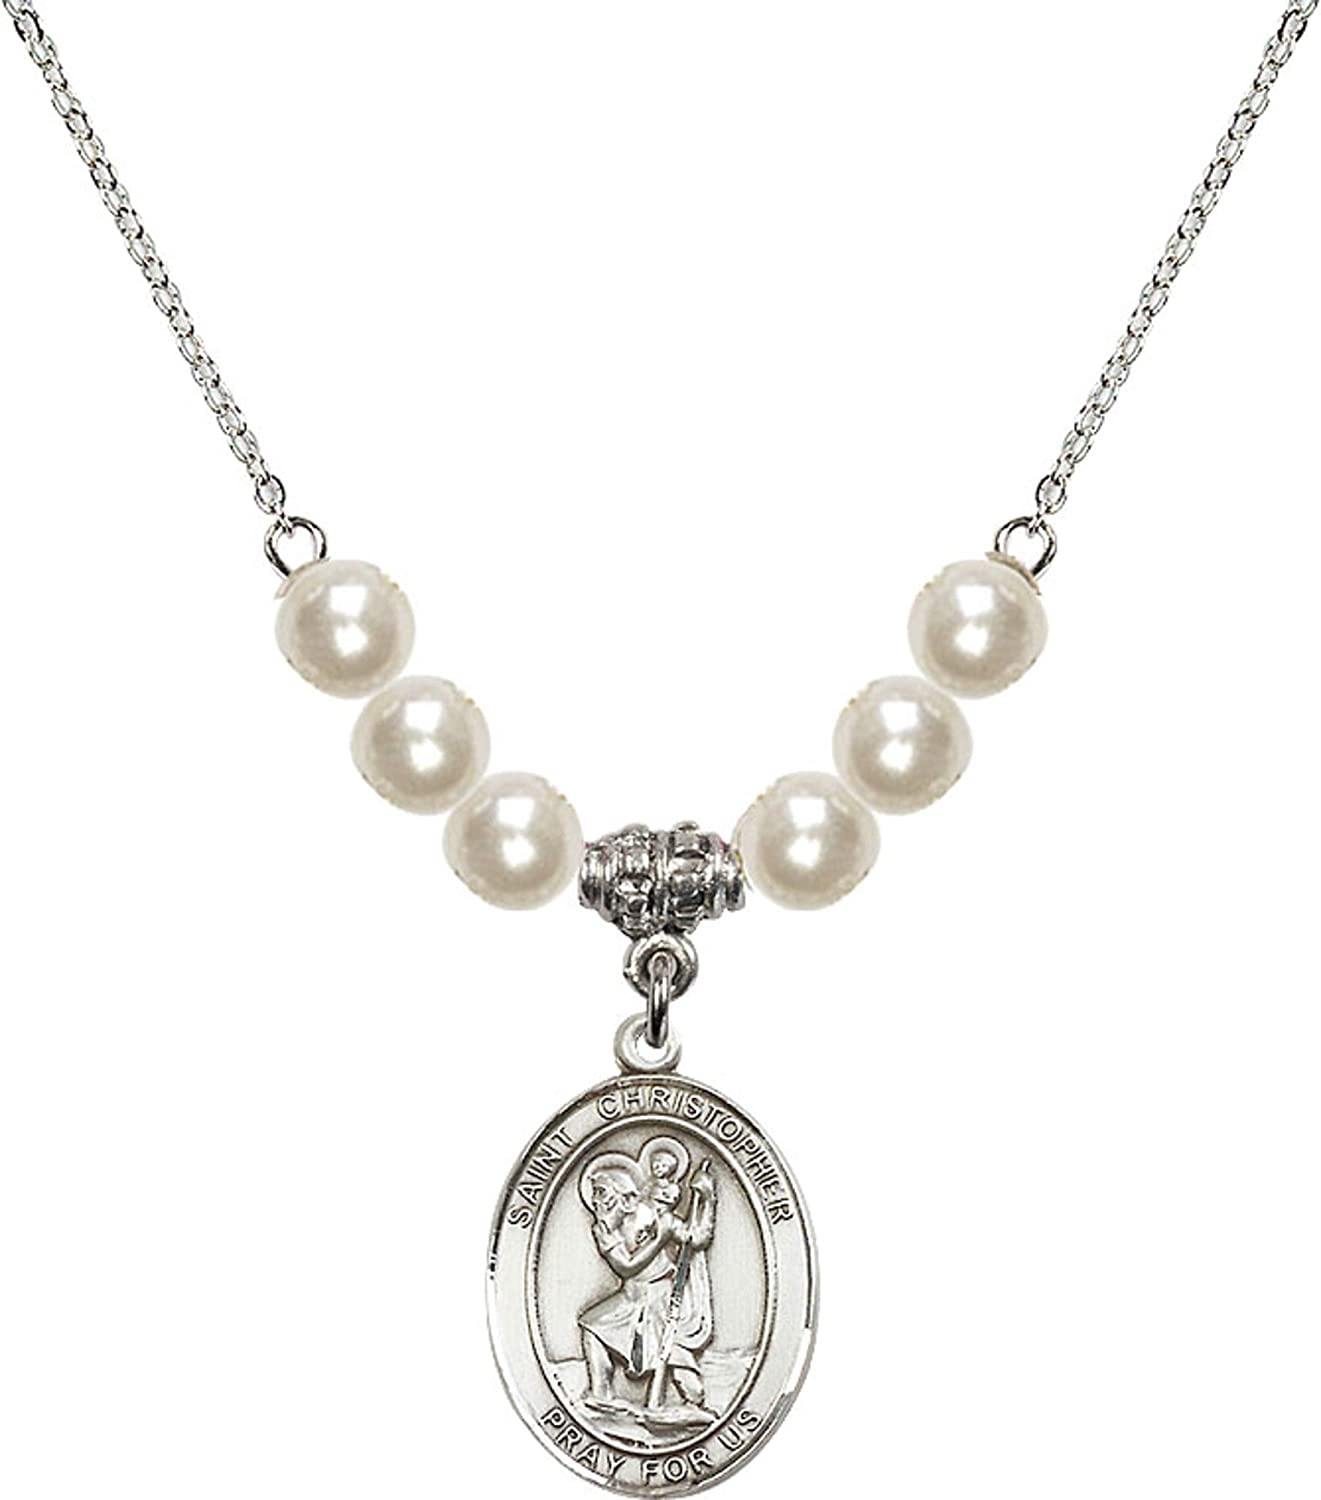 Bonyak Jewelry 18 Inch Rhodium Plated Necklace w// 6mm Faux-Pearl Beads and Saint Christopher Charm